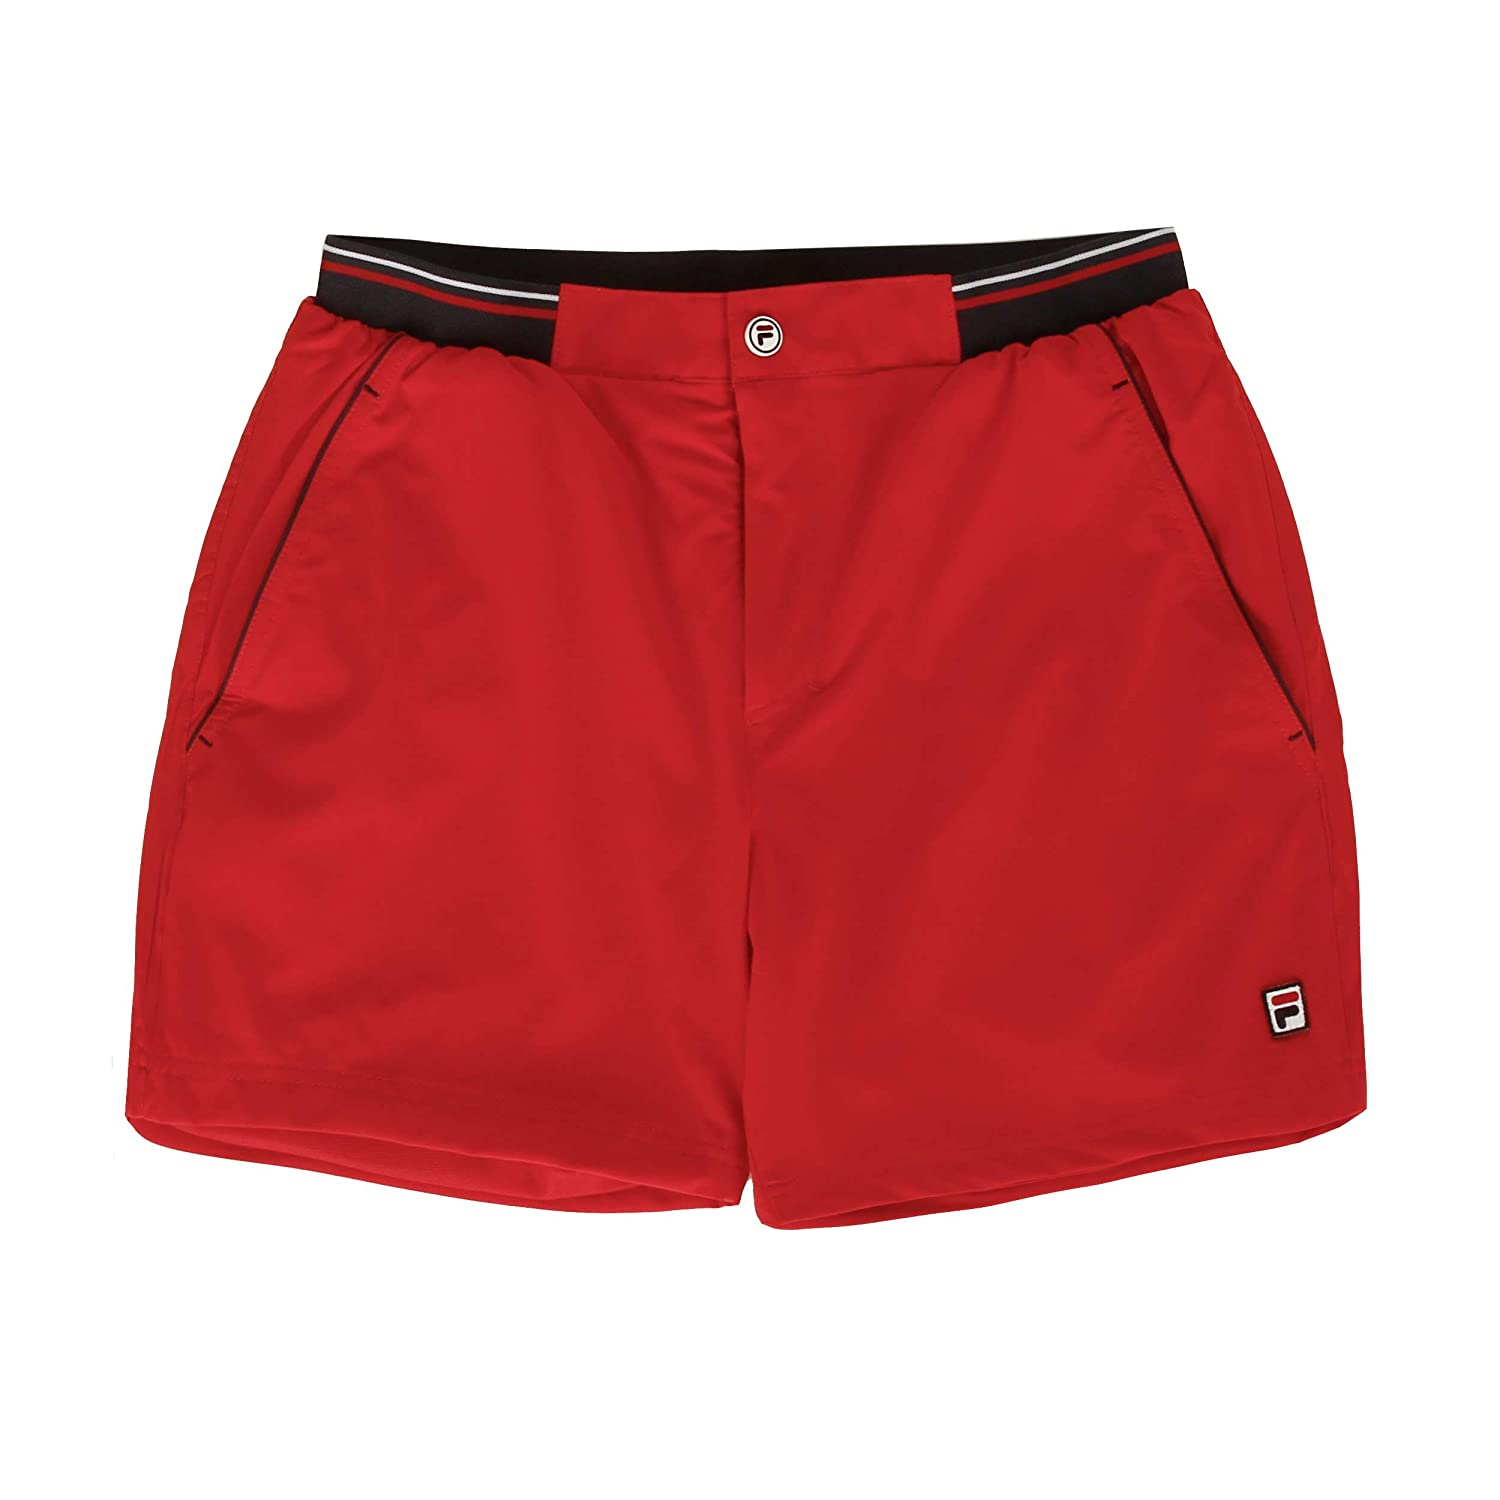 Fila Men's Stephan Shorts, Red, Medium